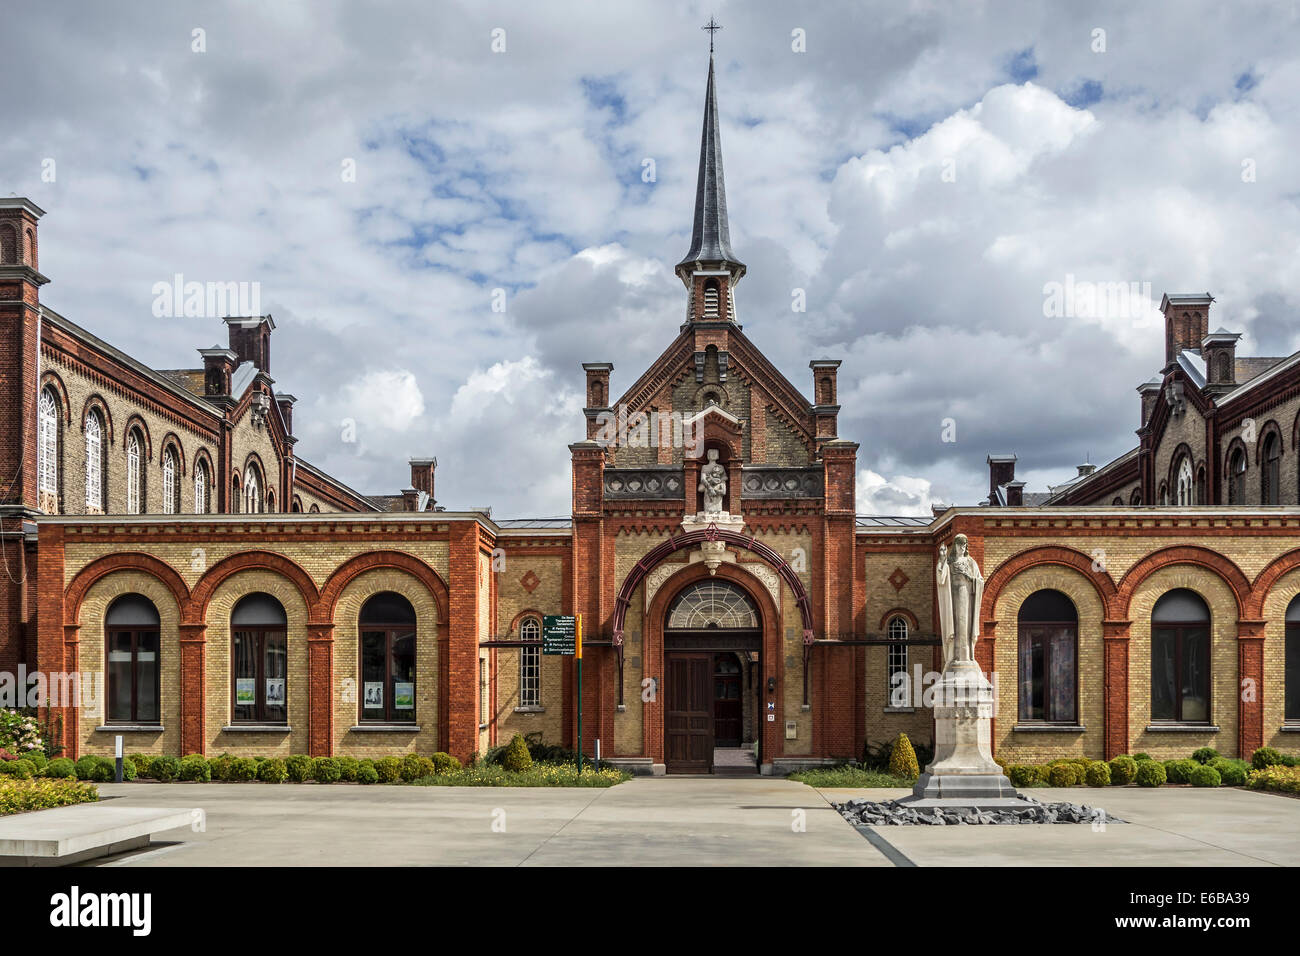 Dr Guislain Museum about the history of psychiatry in the former Guislain Hospice, Belgium's first psychiatric hospital - Stock Image